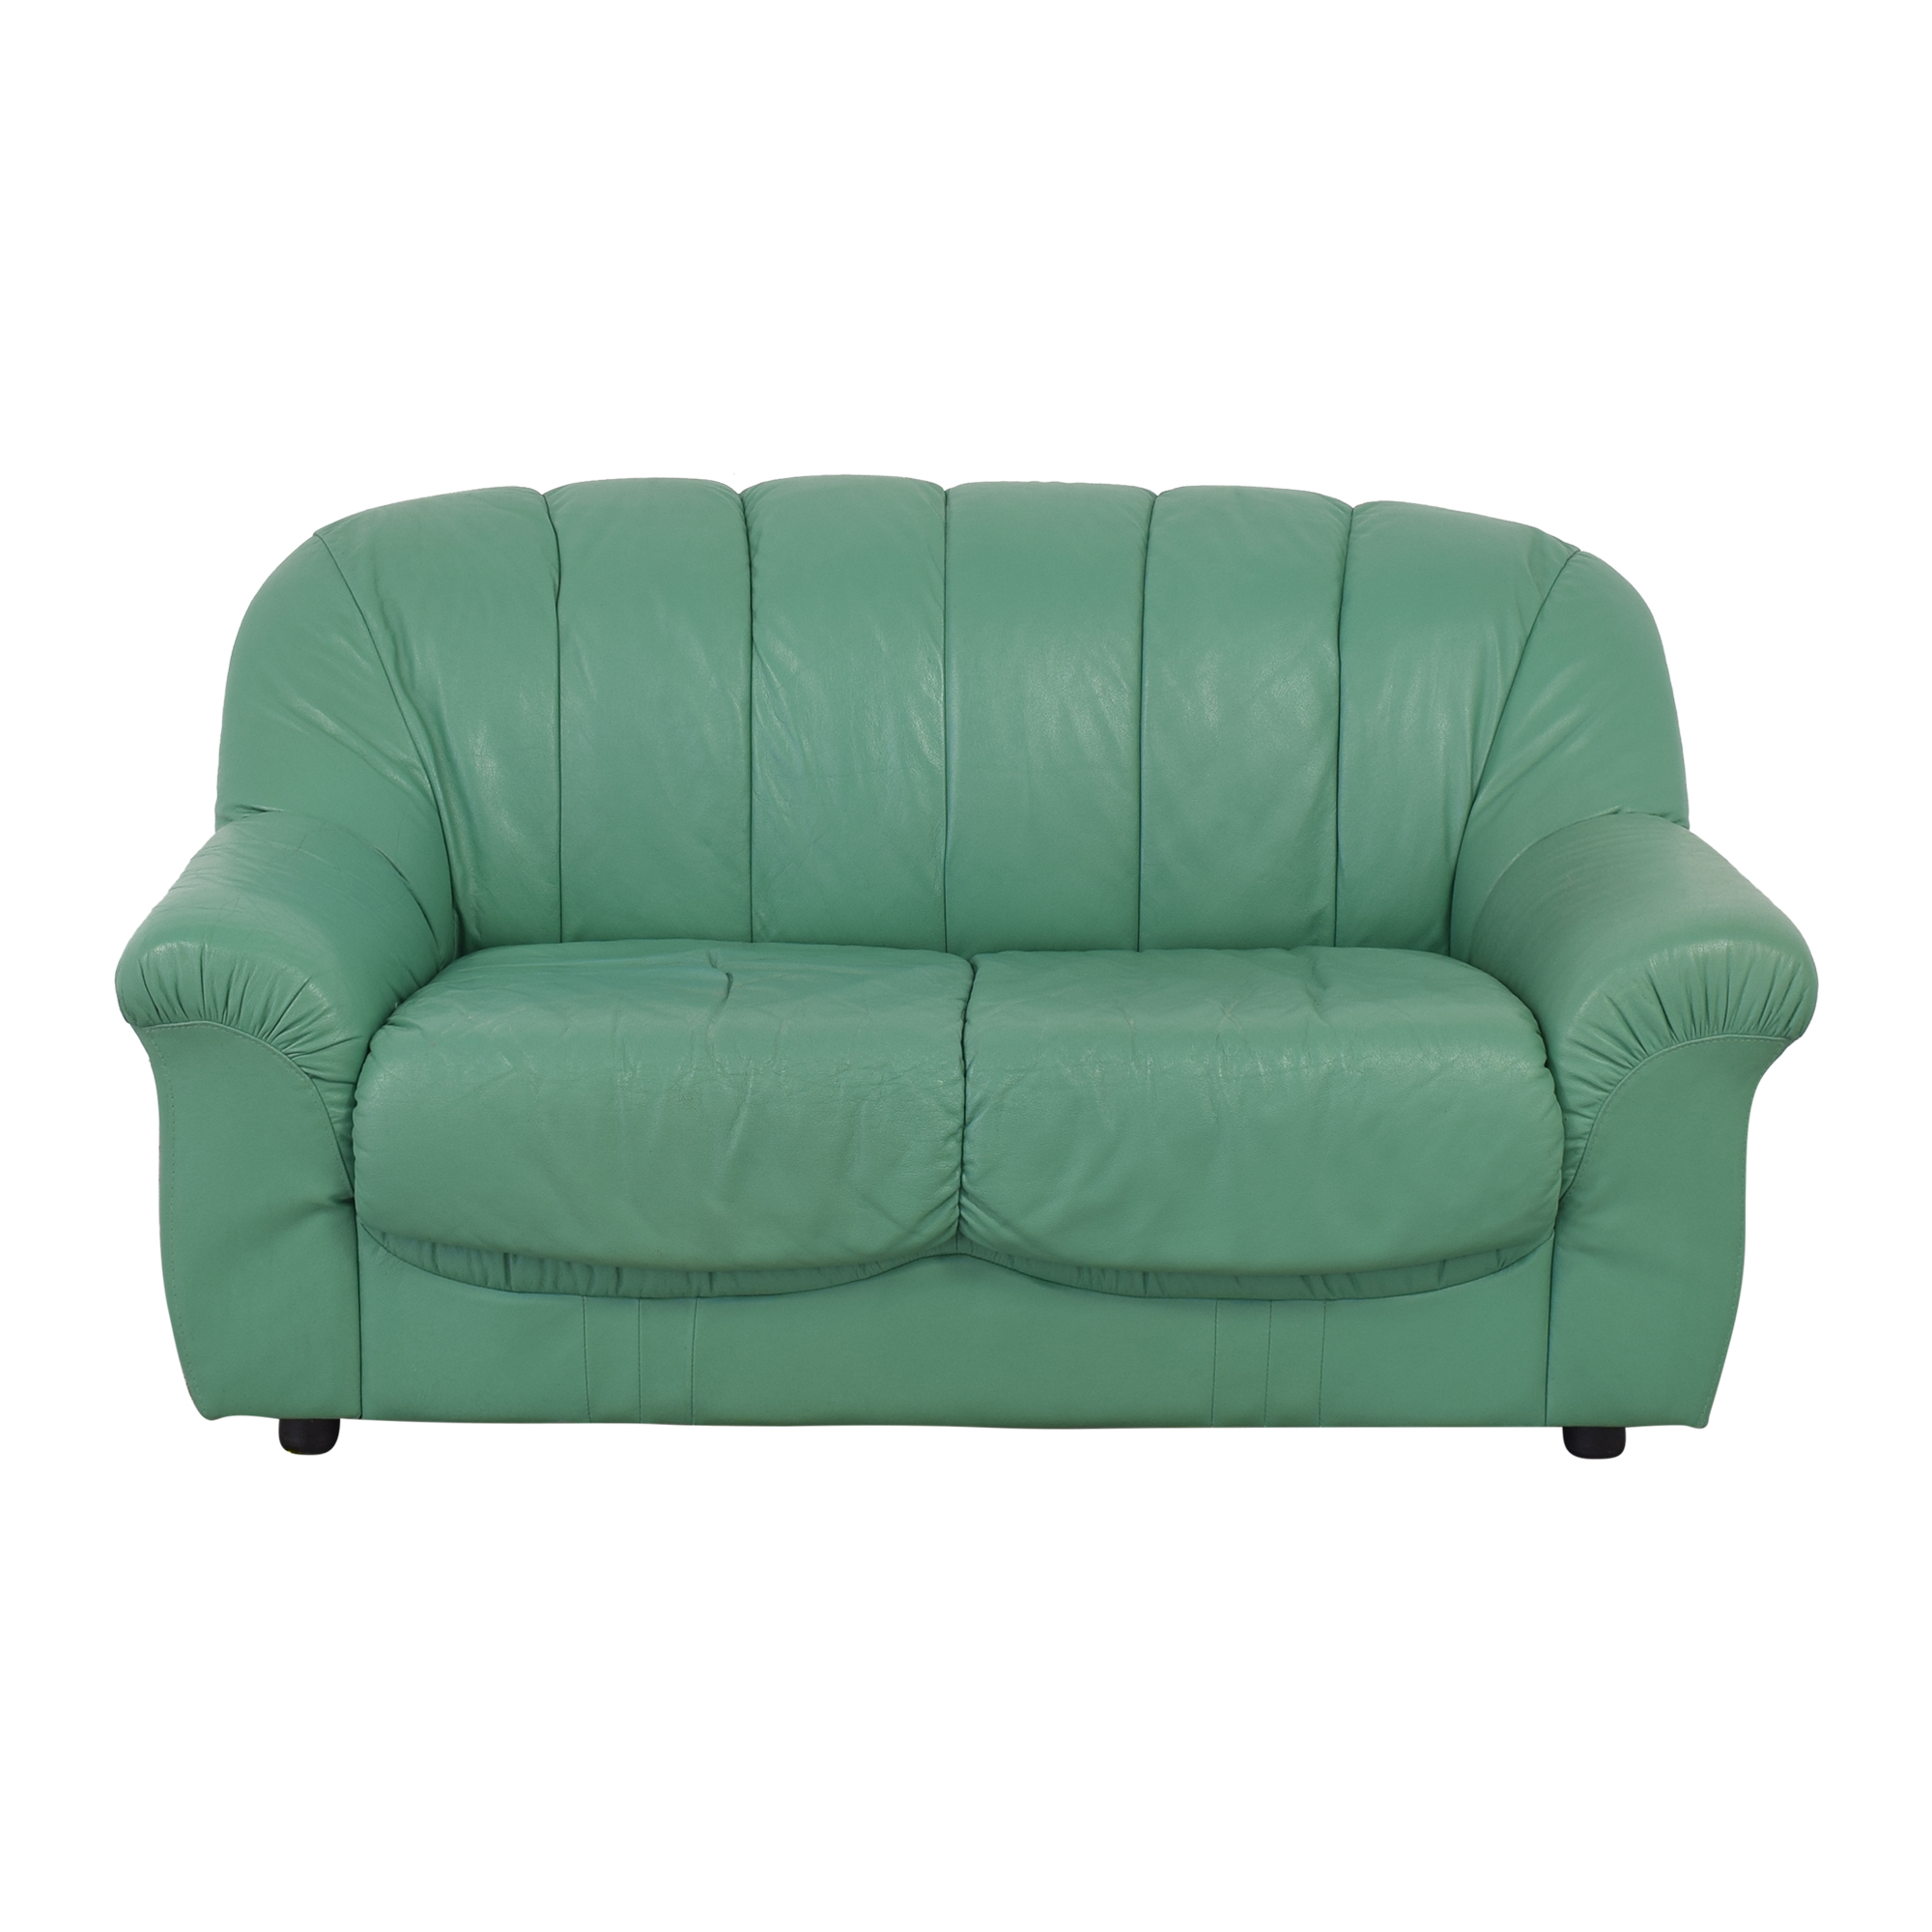 buy Roma Real Leather Green Couch Roma Furniture Sofas